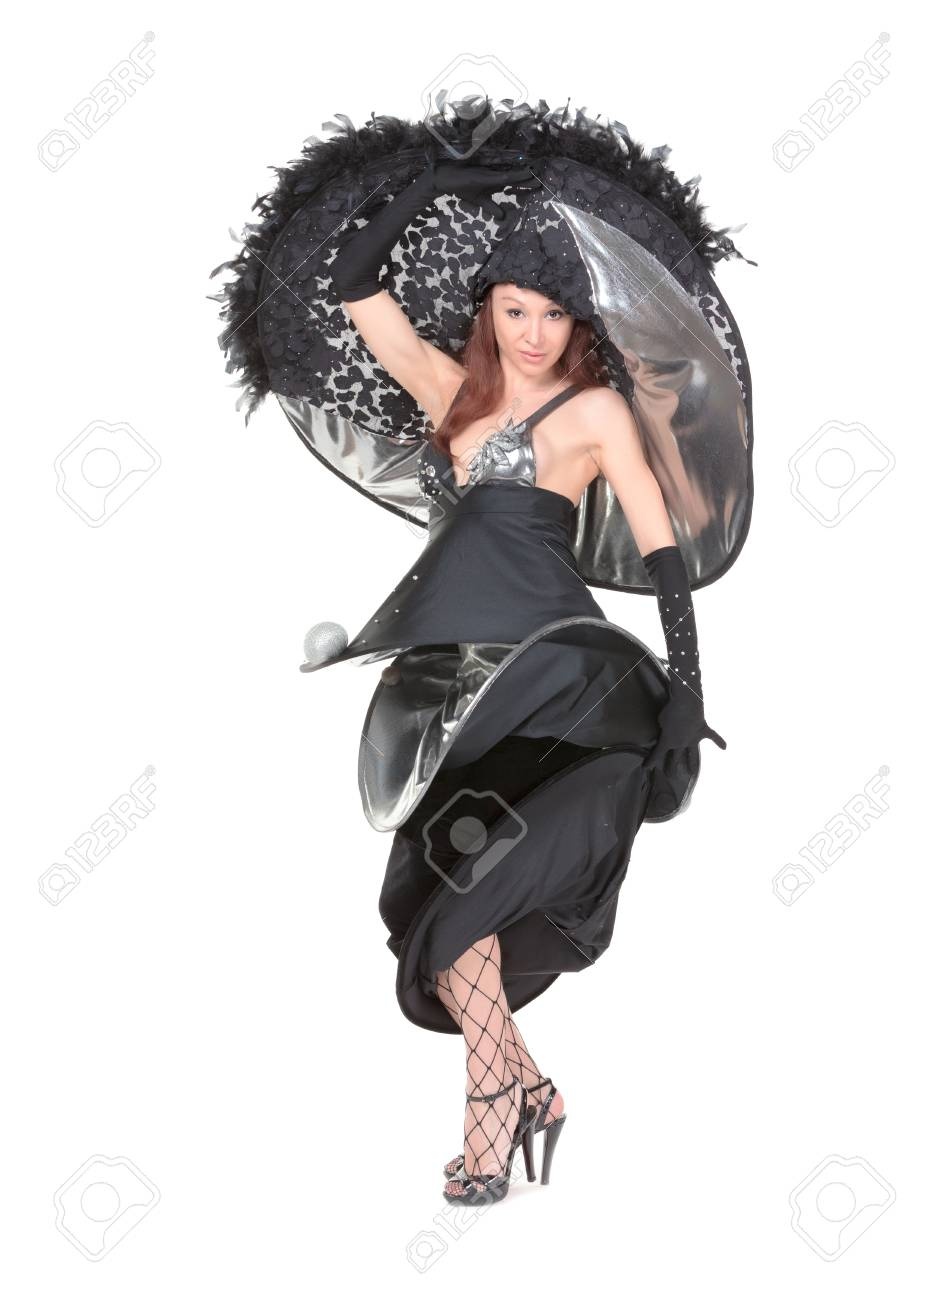 Beautiful young woman dressed in haute couture fashion wearing a modern stylish flamboyant evening outfit in black on a white background Stock Photo - 18217156